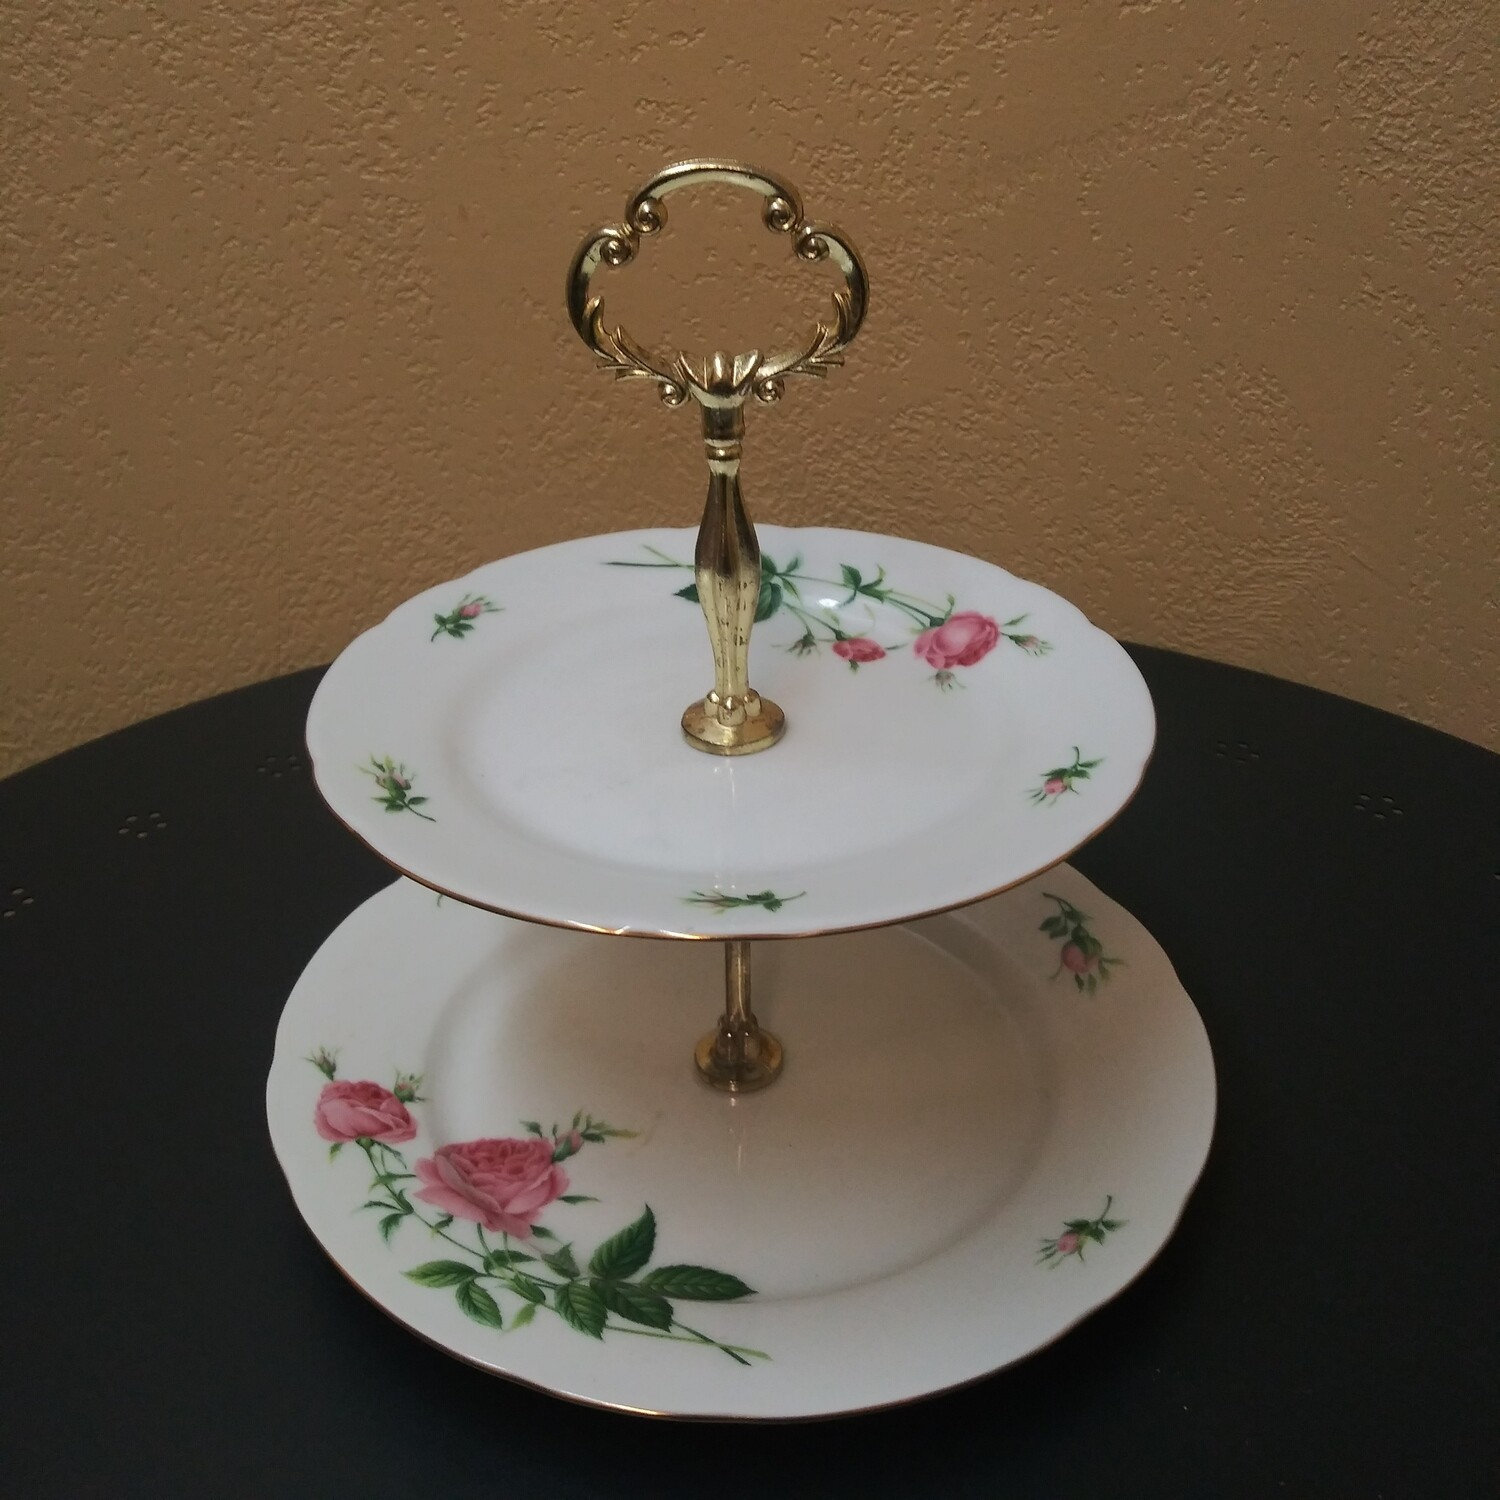 Two Tier Porcelain Cake Plate